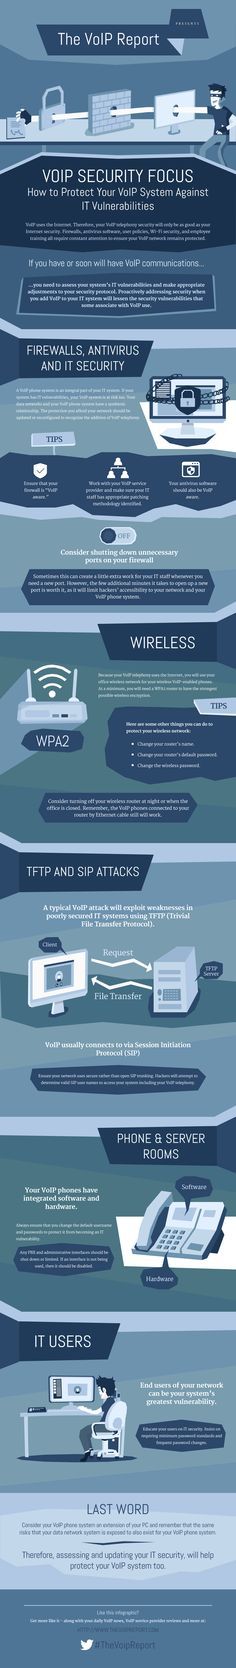 VoIP Security Focus: How to Protect Your VoIP System Against IT Vulnerabilities [Infographic]